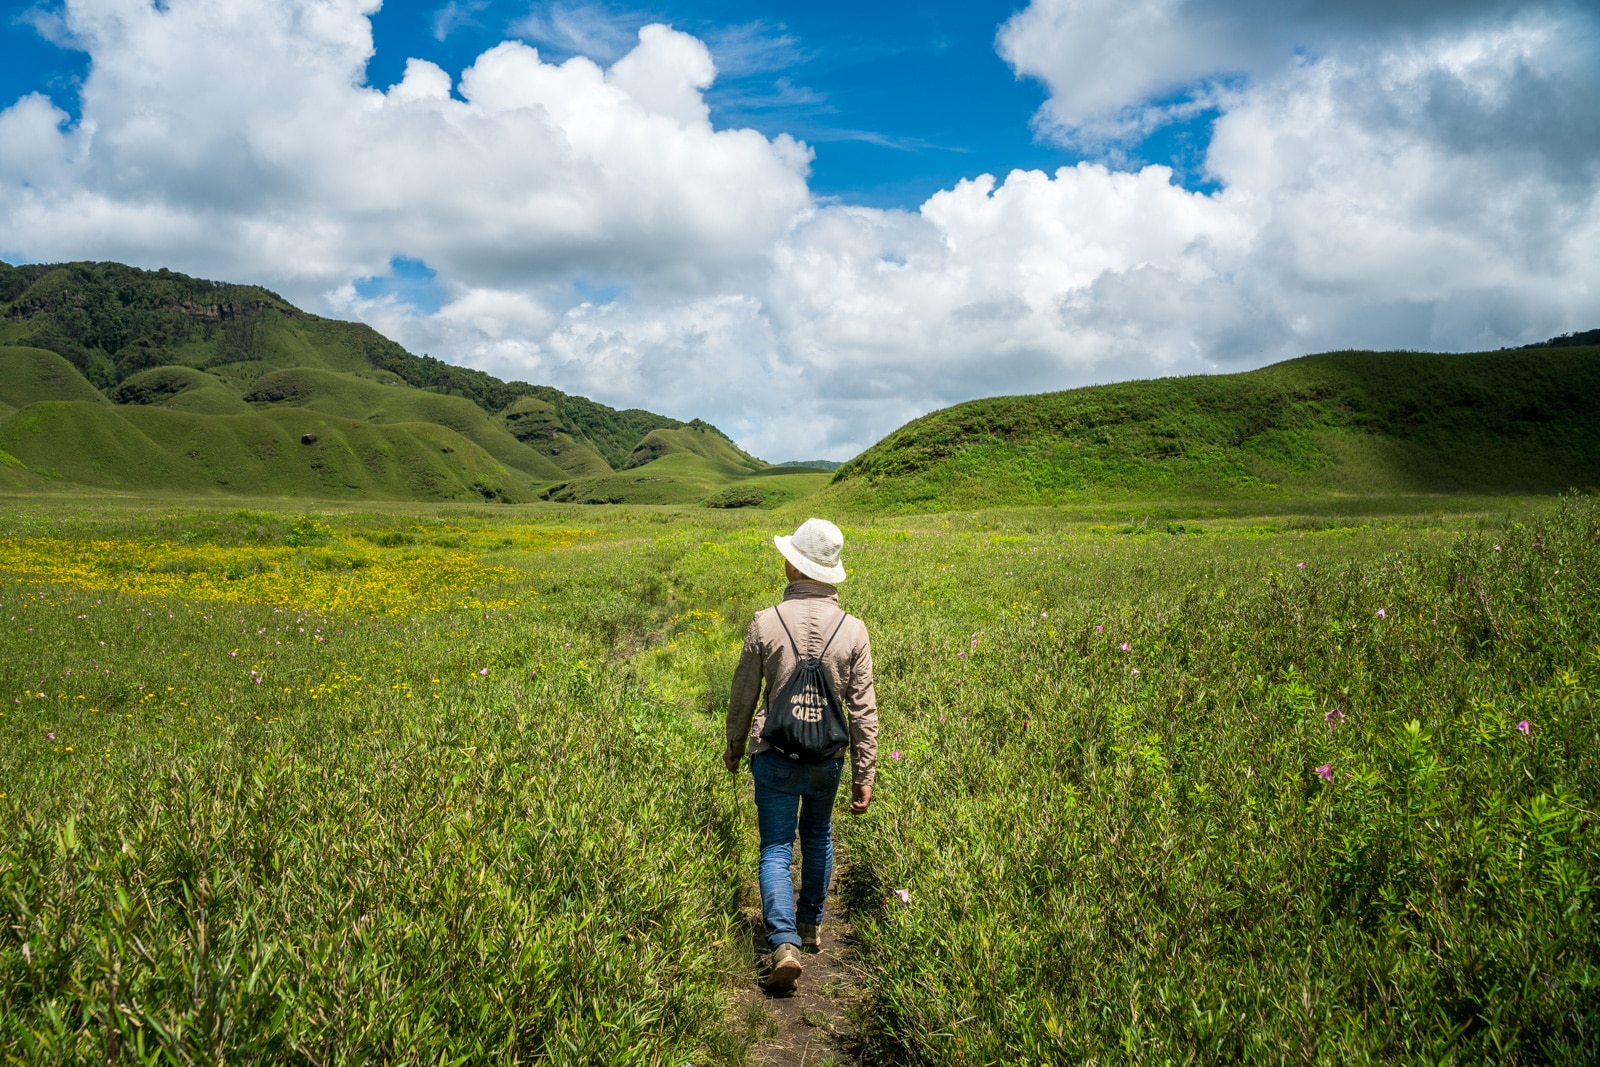 Why you need to travel in Northeast India - Guide walking through the hills of Dzukou Valley in Nagaland and Manipur - Lost With Purpose travel blog